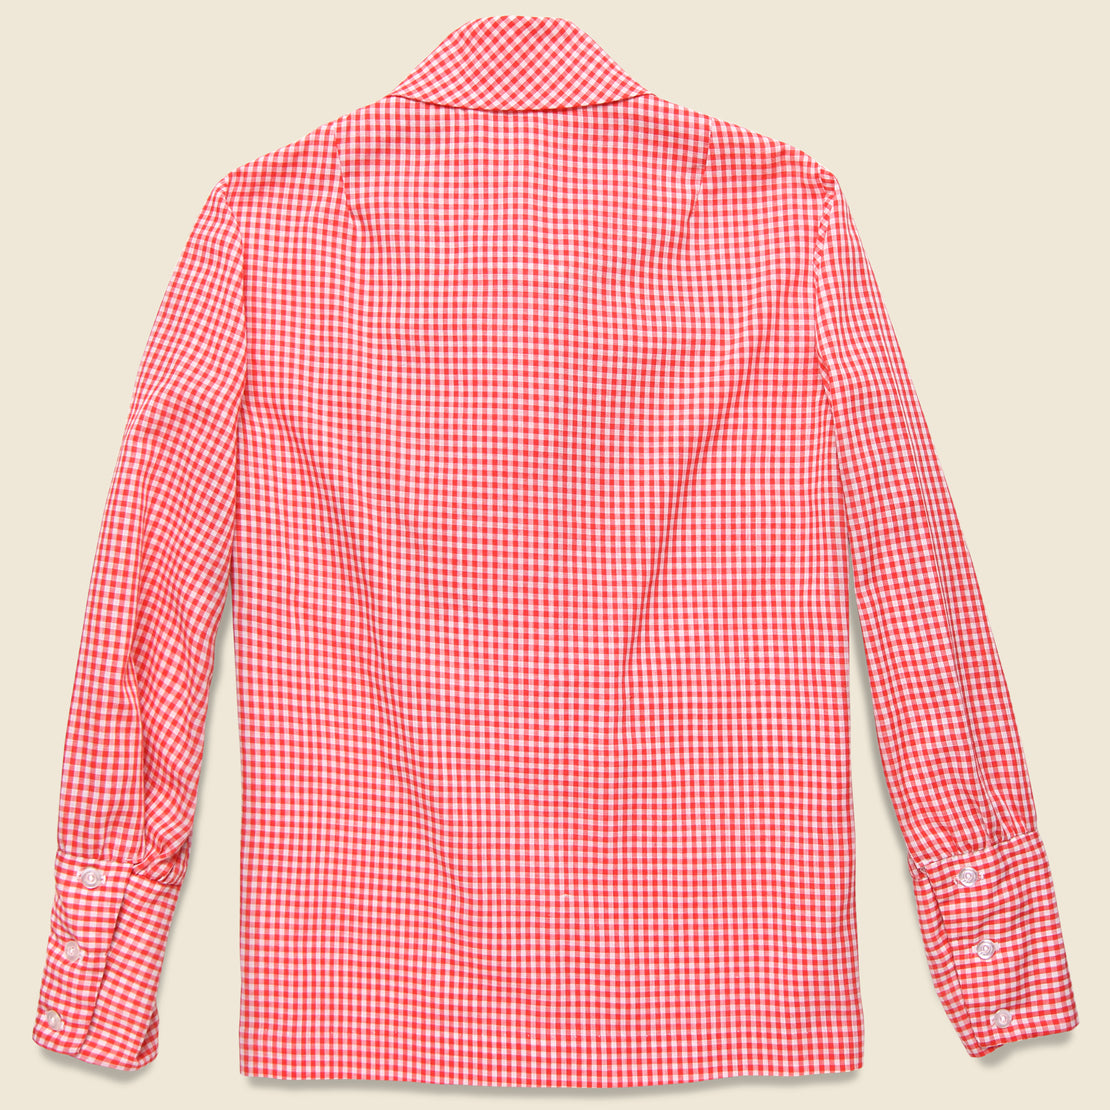 Tie-Neck Western Shirt - Red/White Check